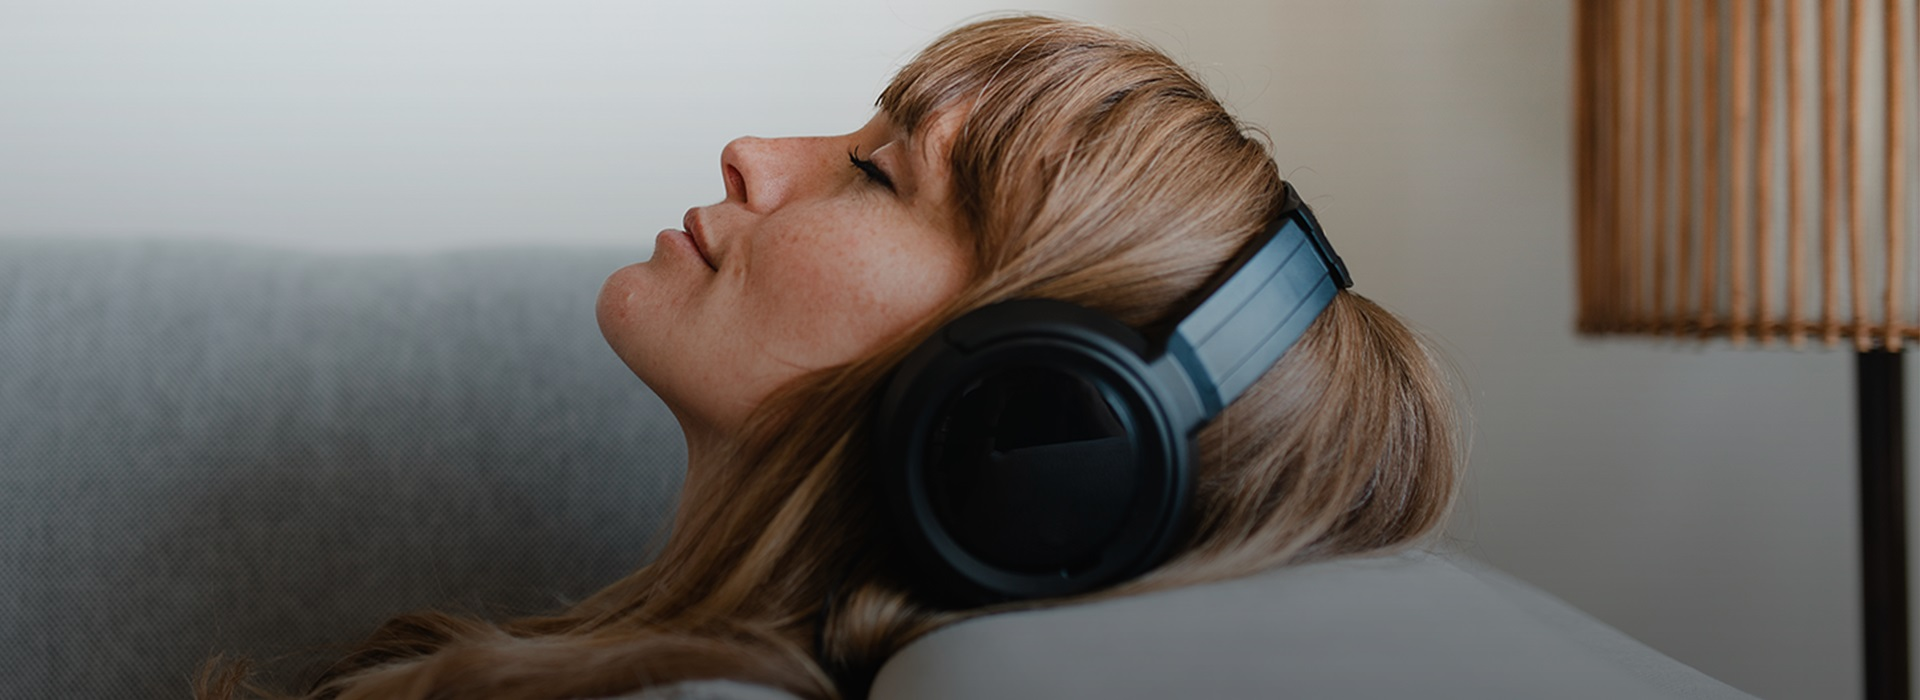 A woman is lying on the couch and listening to music on headphones